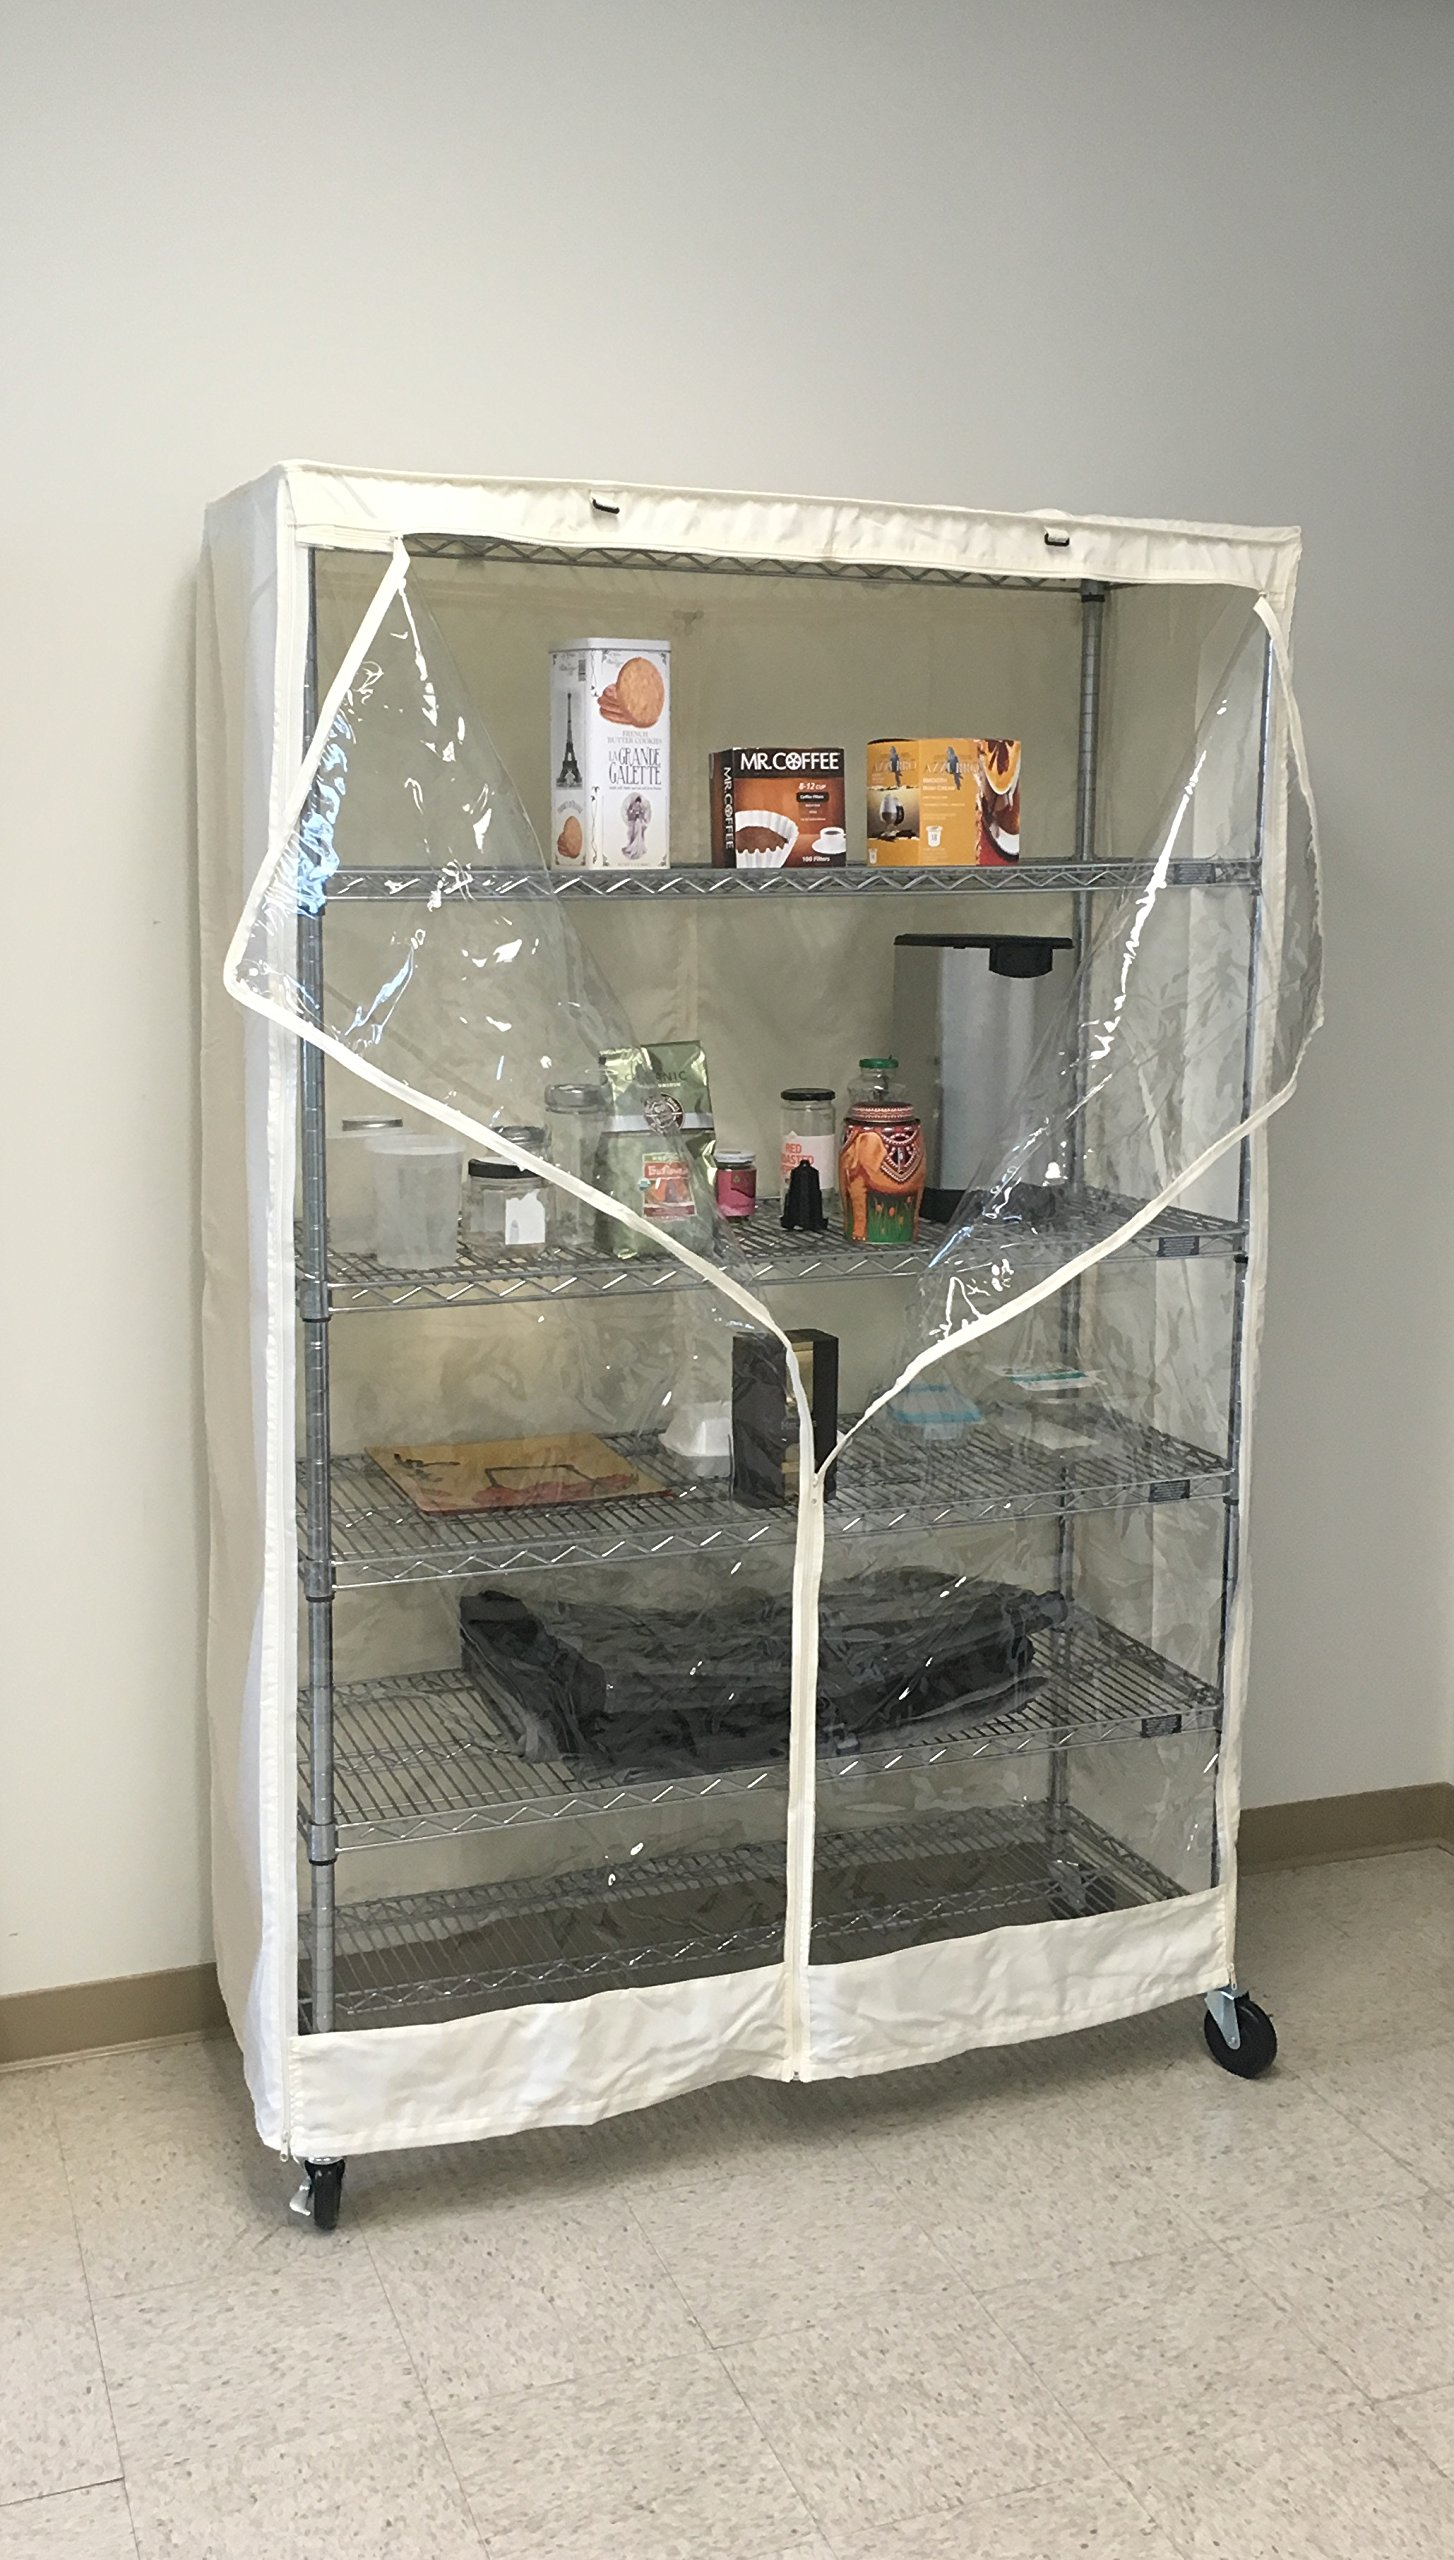 Formosa Covers Storage Shelving Unit Cover Off White, fits Racks 48'' Wx18 Dx72 H one Side See Through Panel (Cover only)